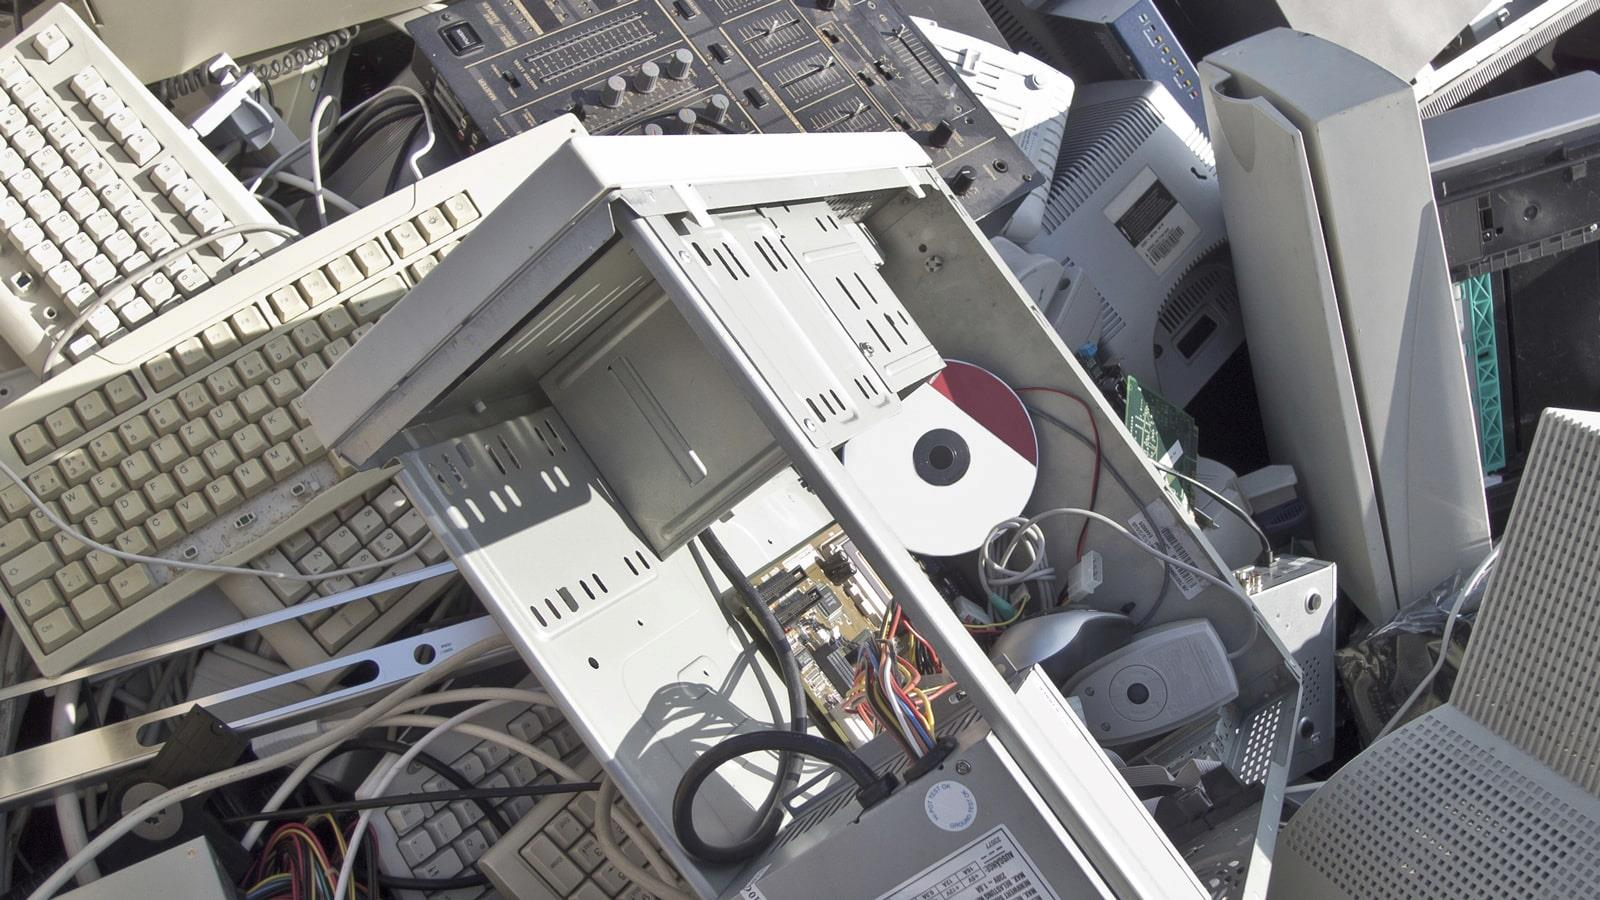 Electronic scrap of used computers and cabinets